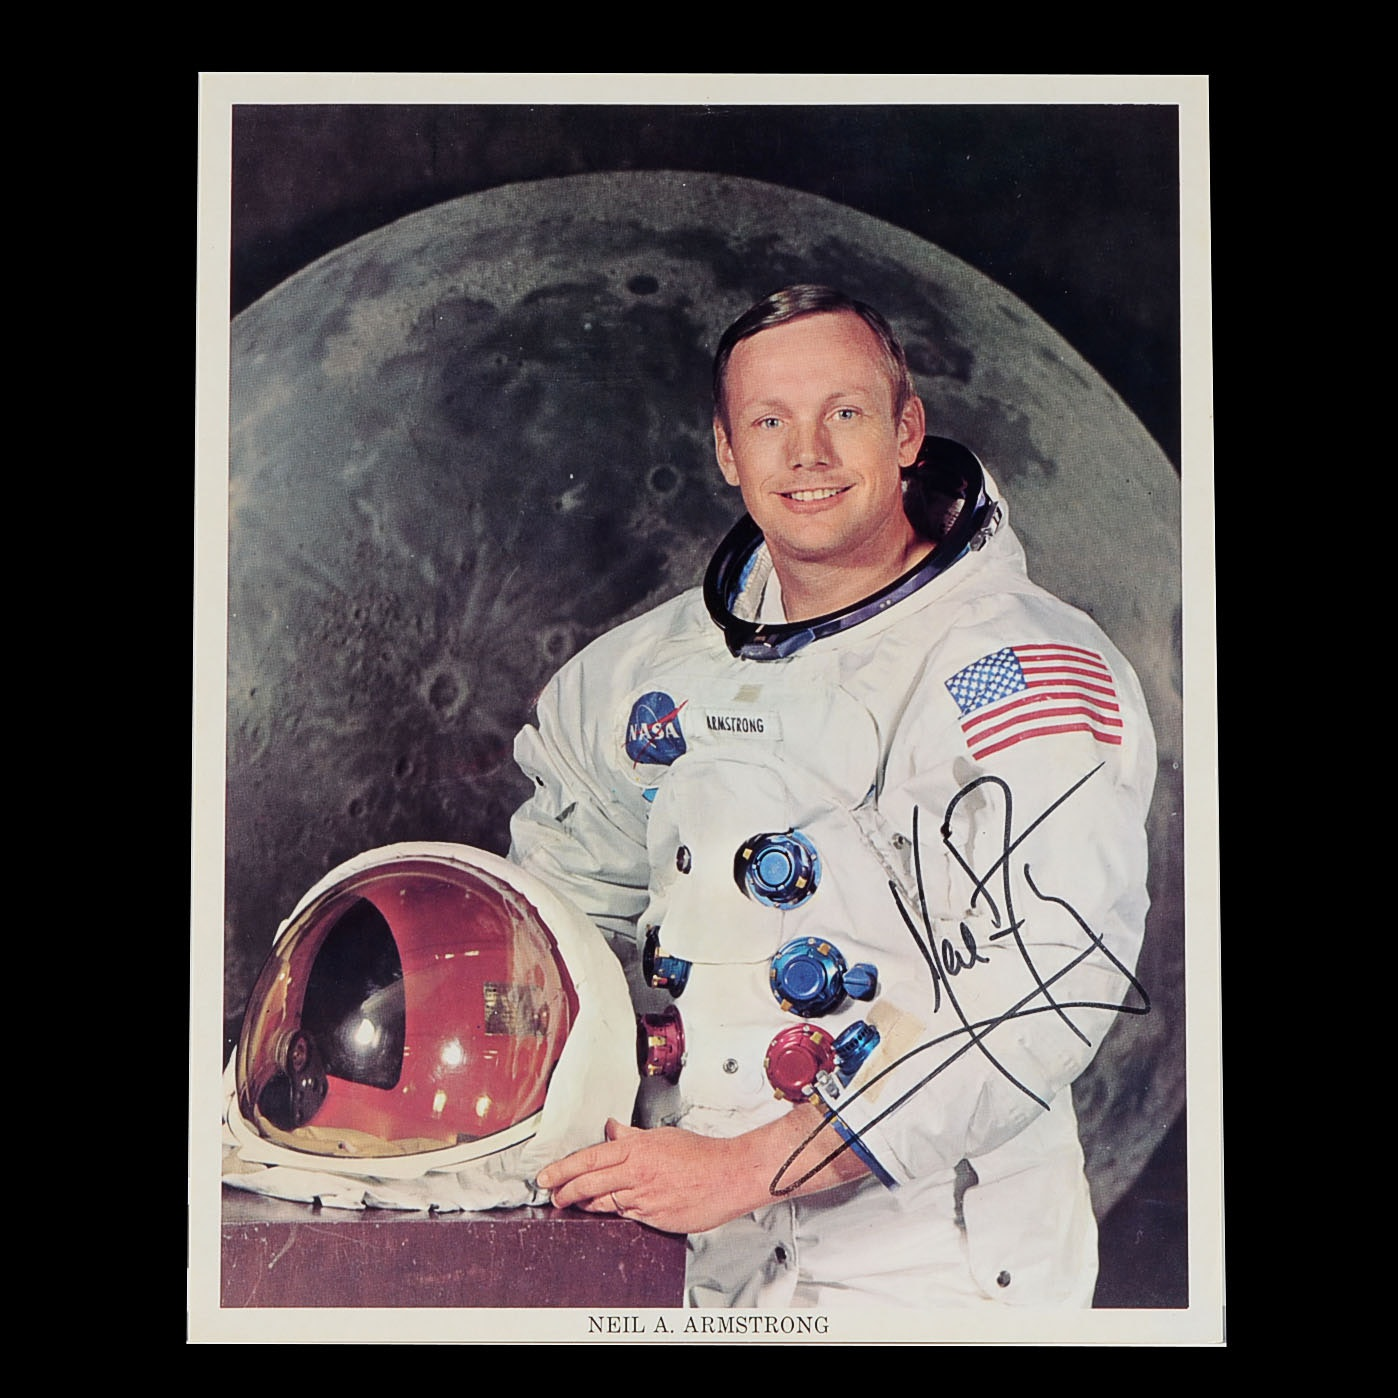 Neil Armstrong Signed Color Photo With Certificate Of Authencity